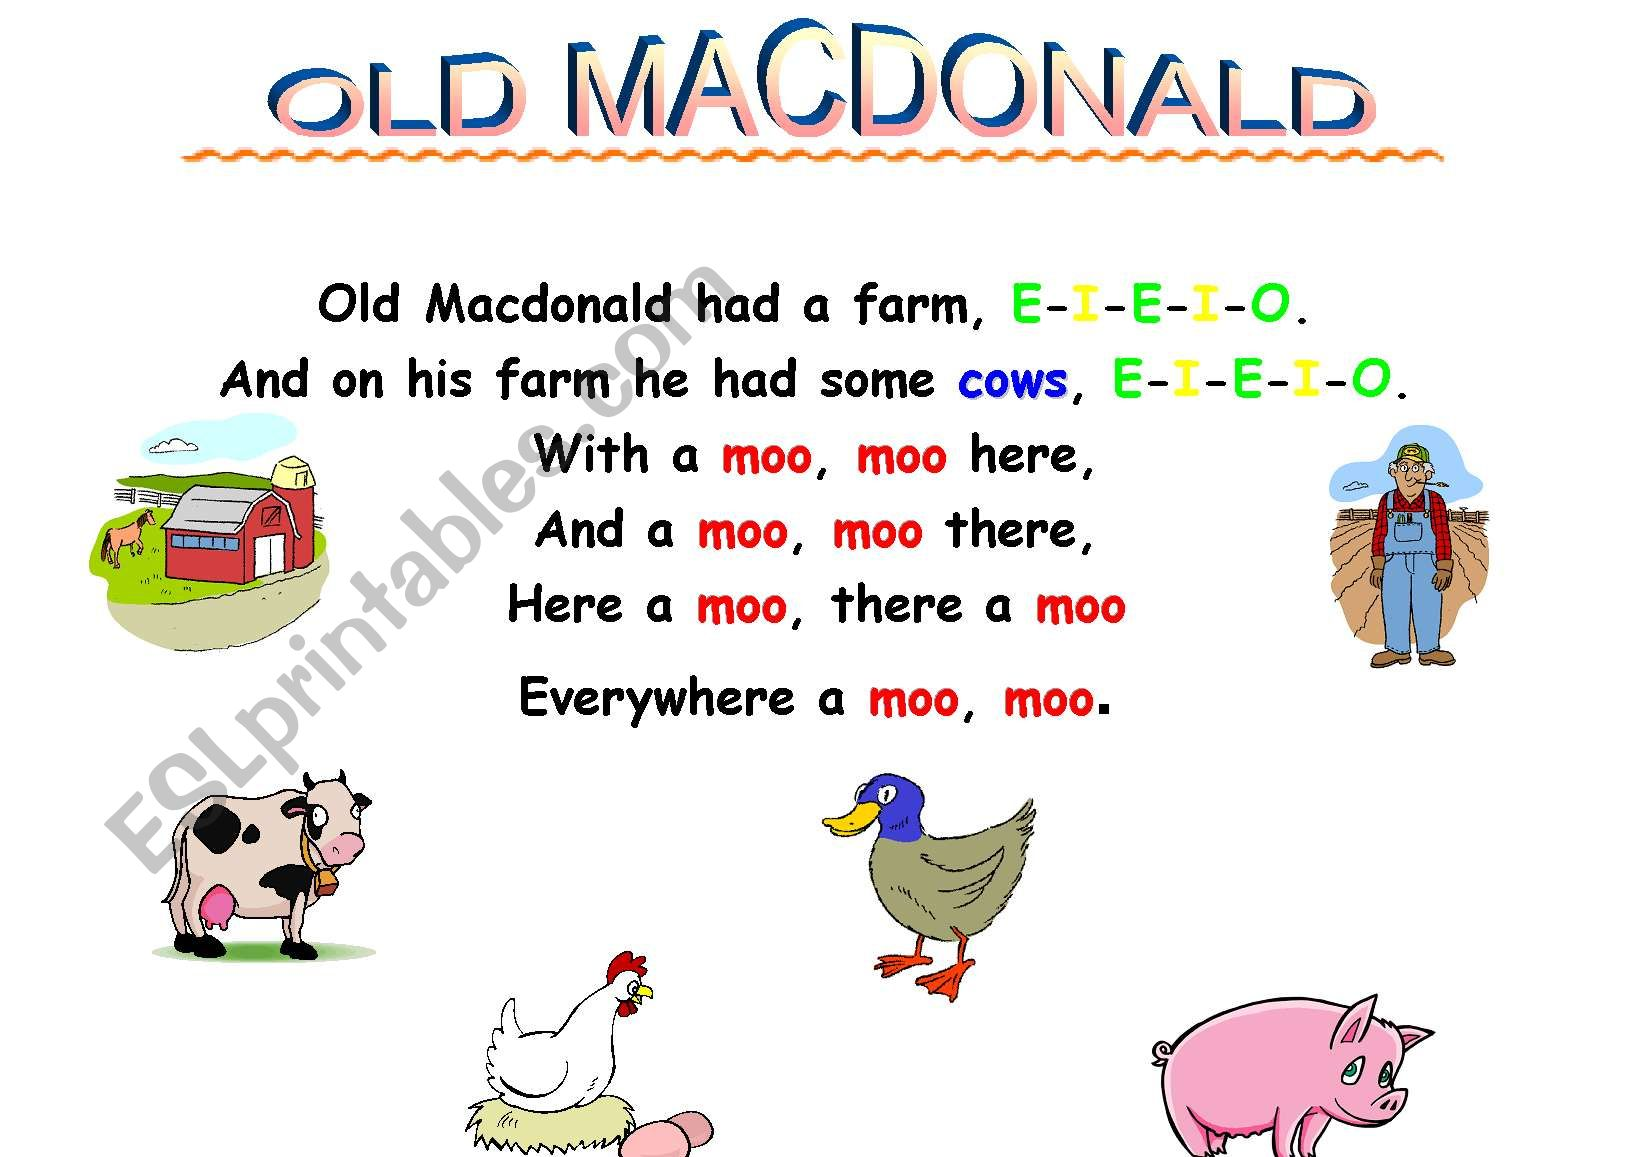 Old Macdonald Songboard